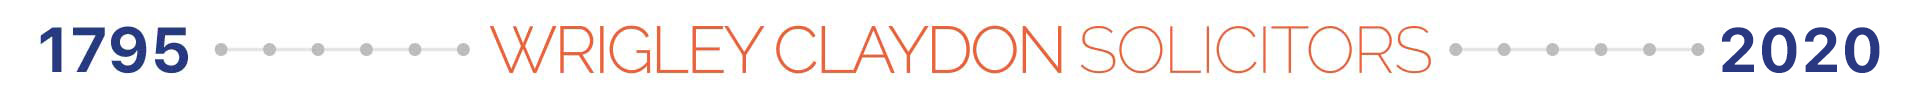 Wrigley Claydon Solicitors Trusted for 200 Years. Experienced Lawyers in Manchester, Oldham and Todmorden